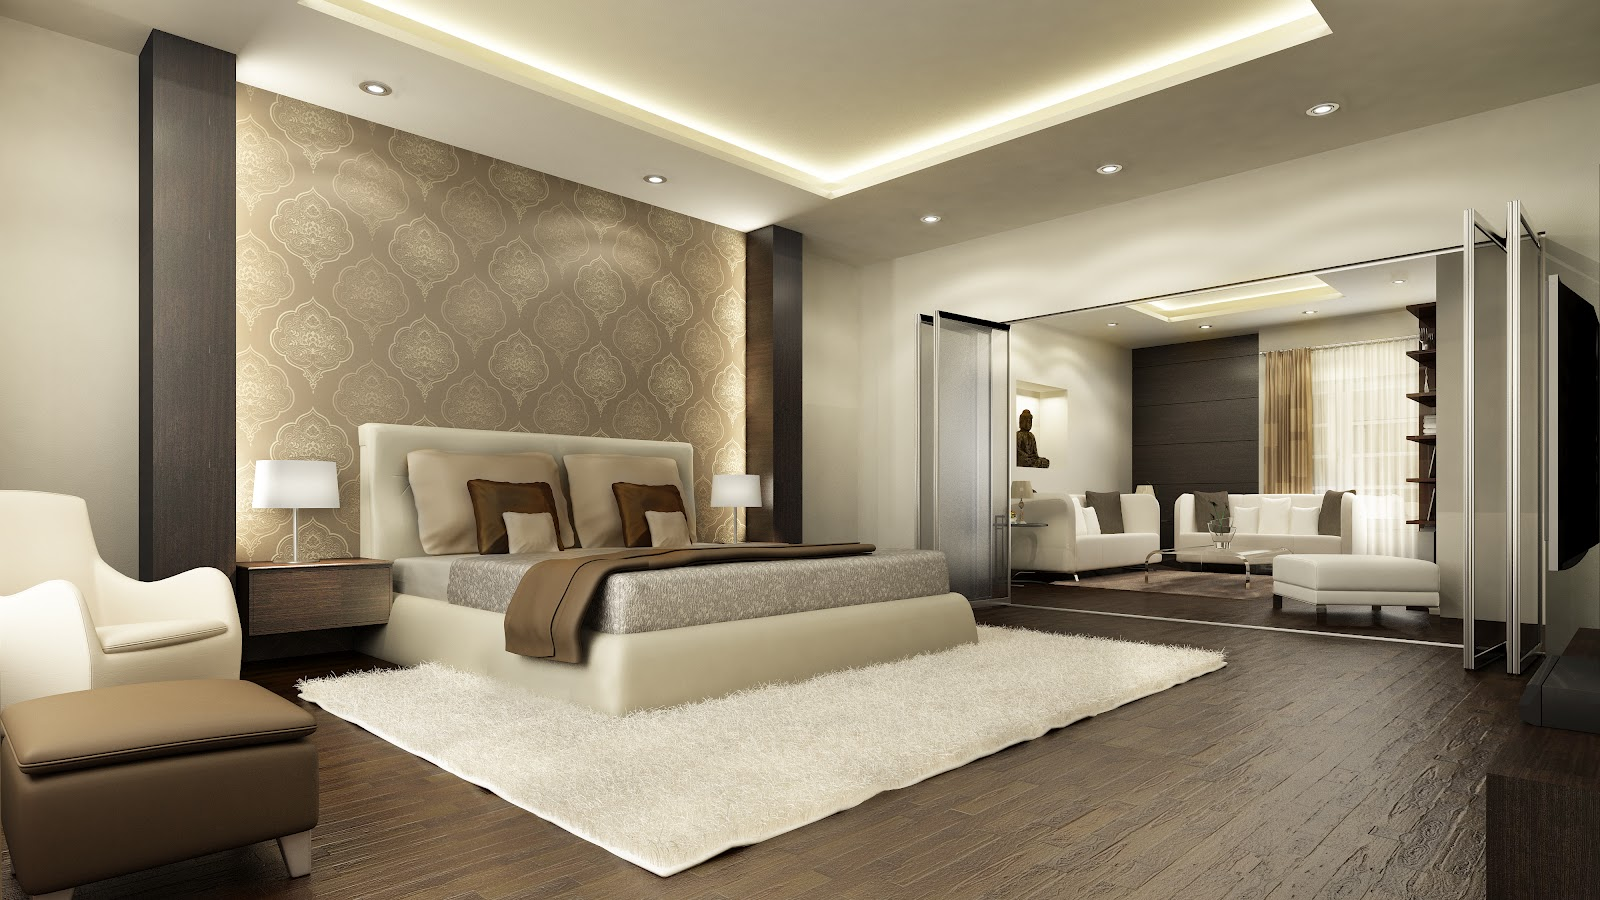 3 Bedroom Apartment Plans In India